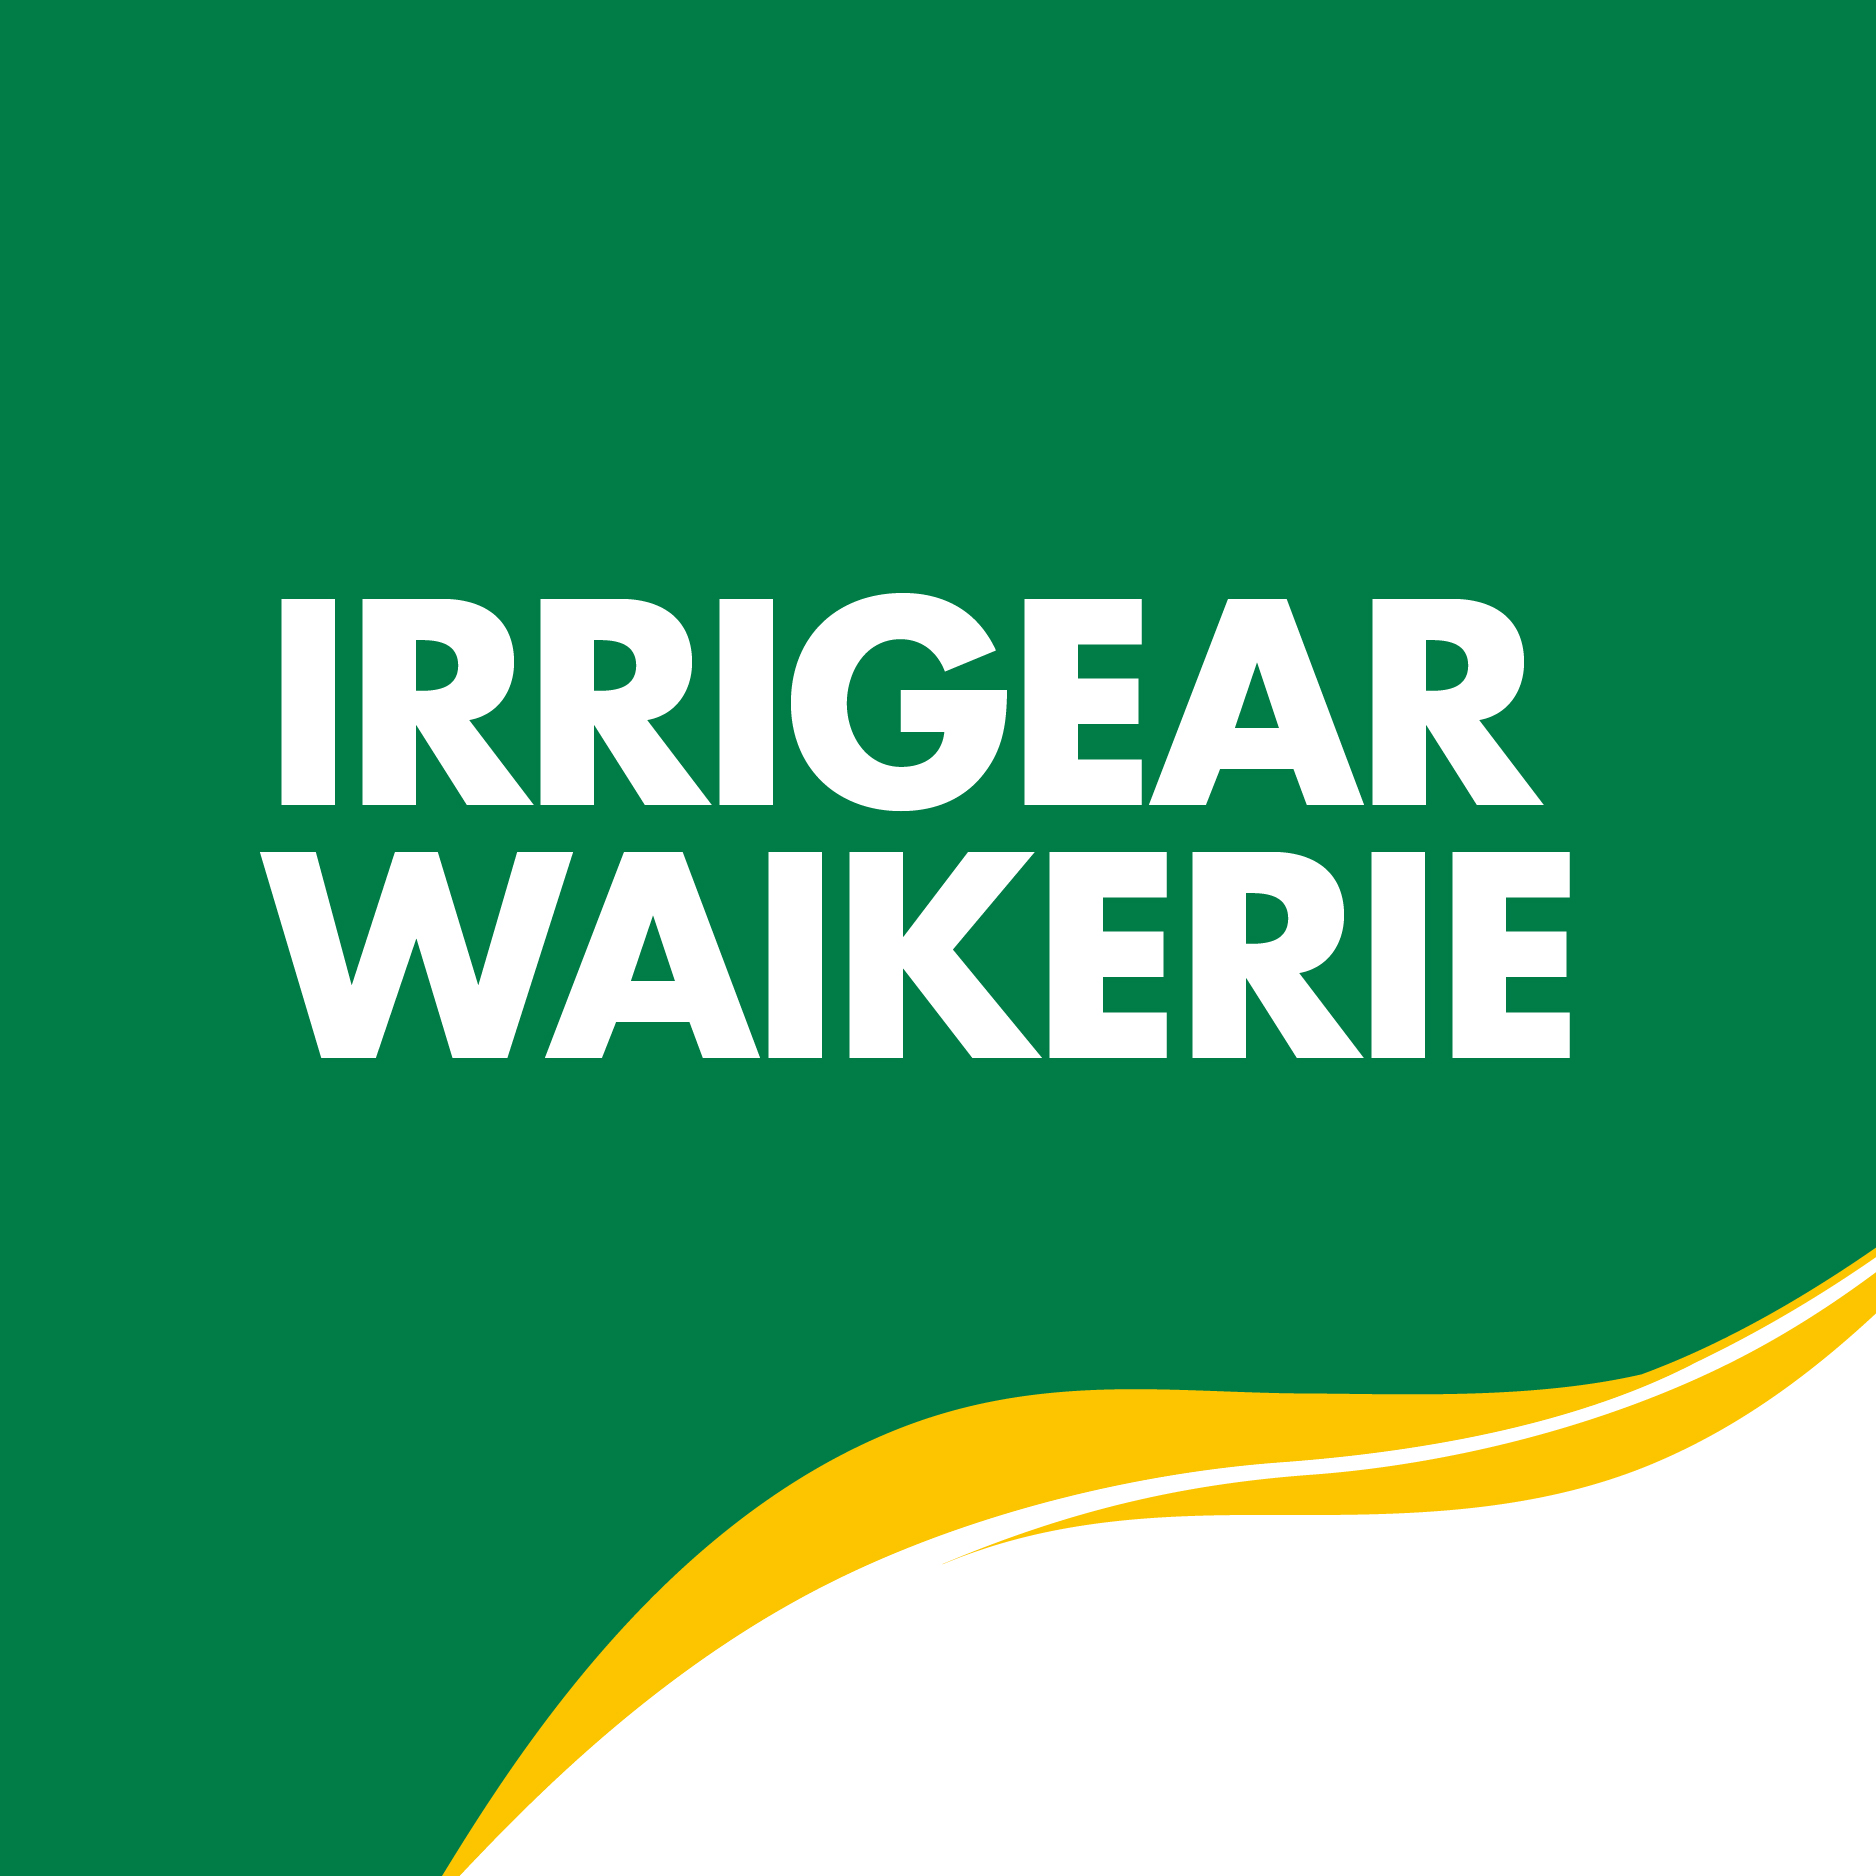 Irrigear Waikerie Avatar Facebook Profile 900x900-SmallType